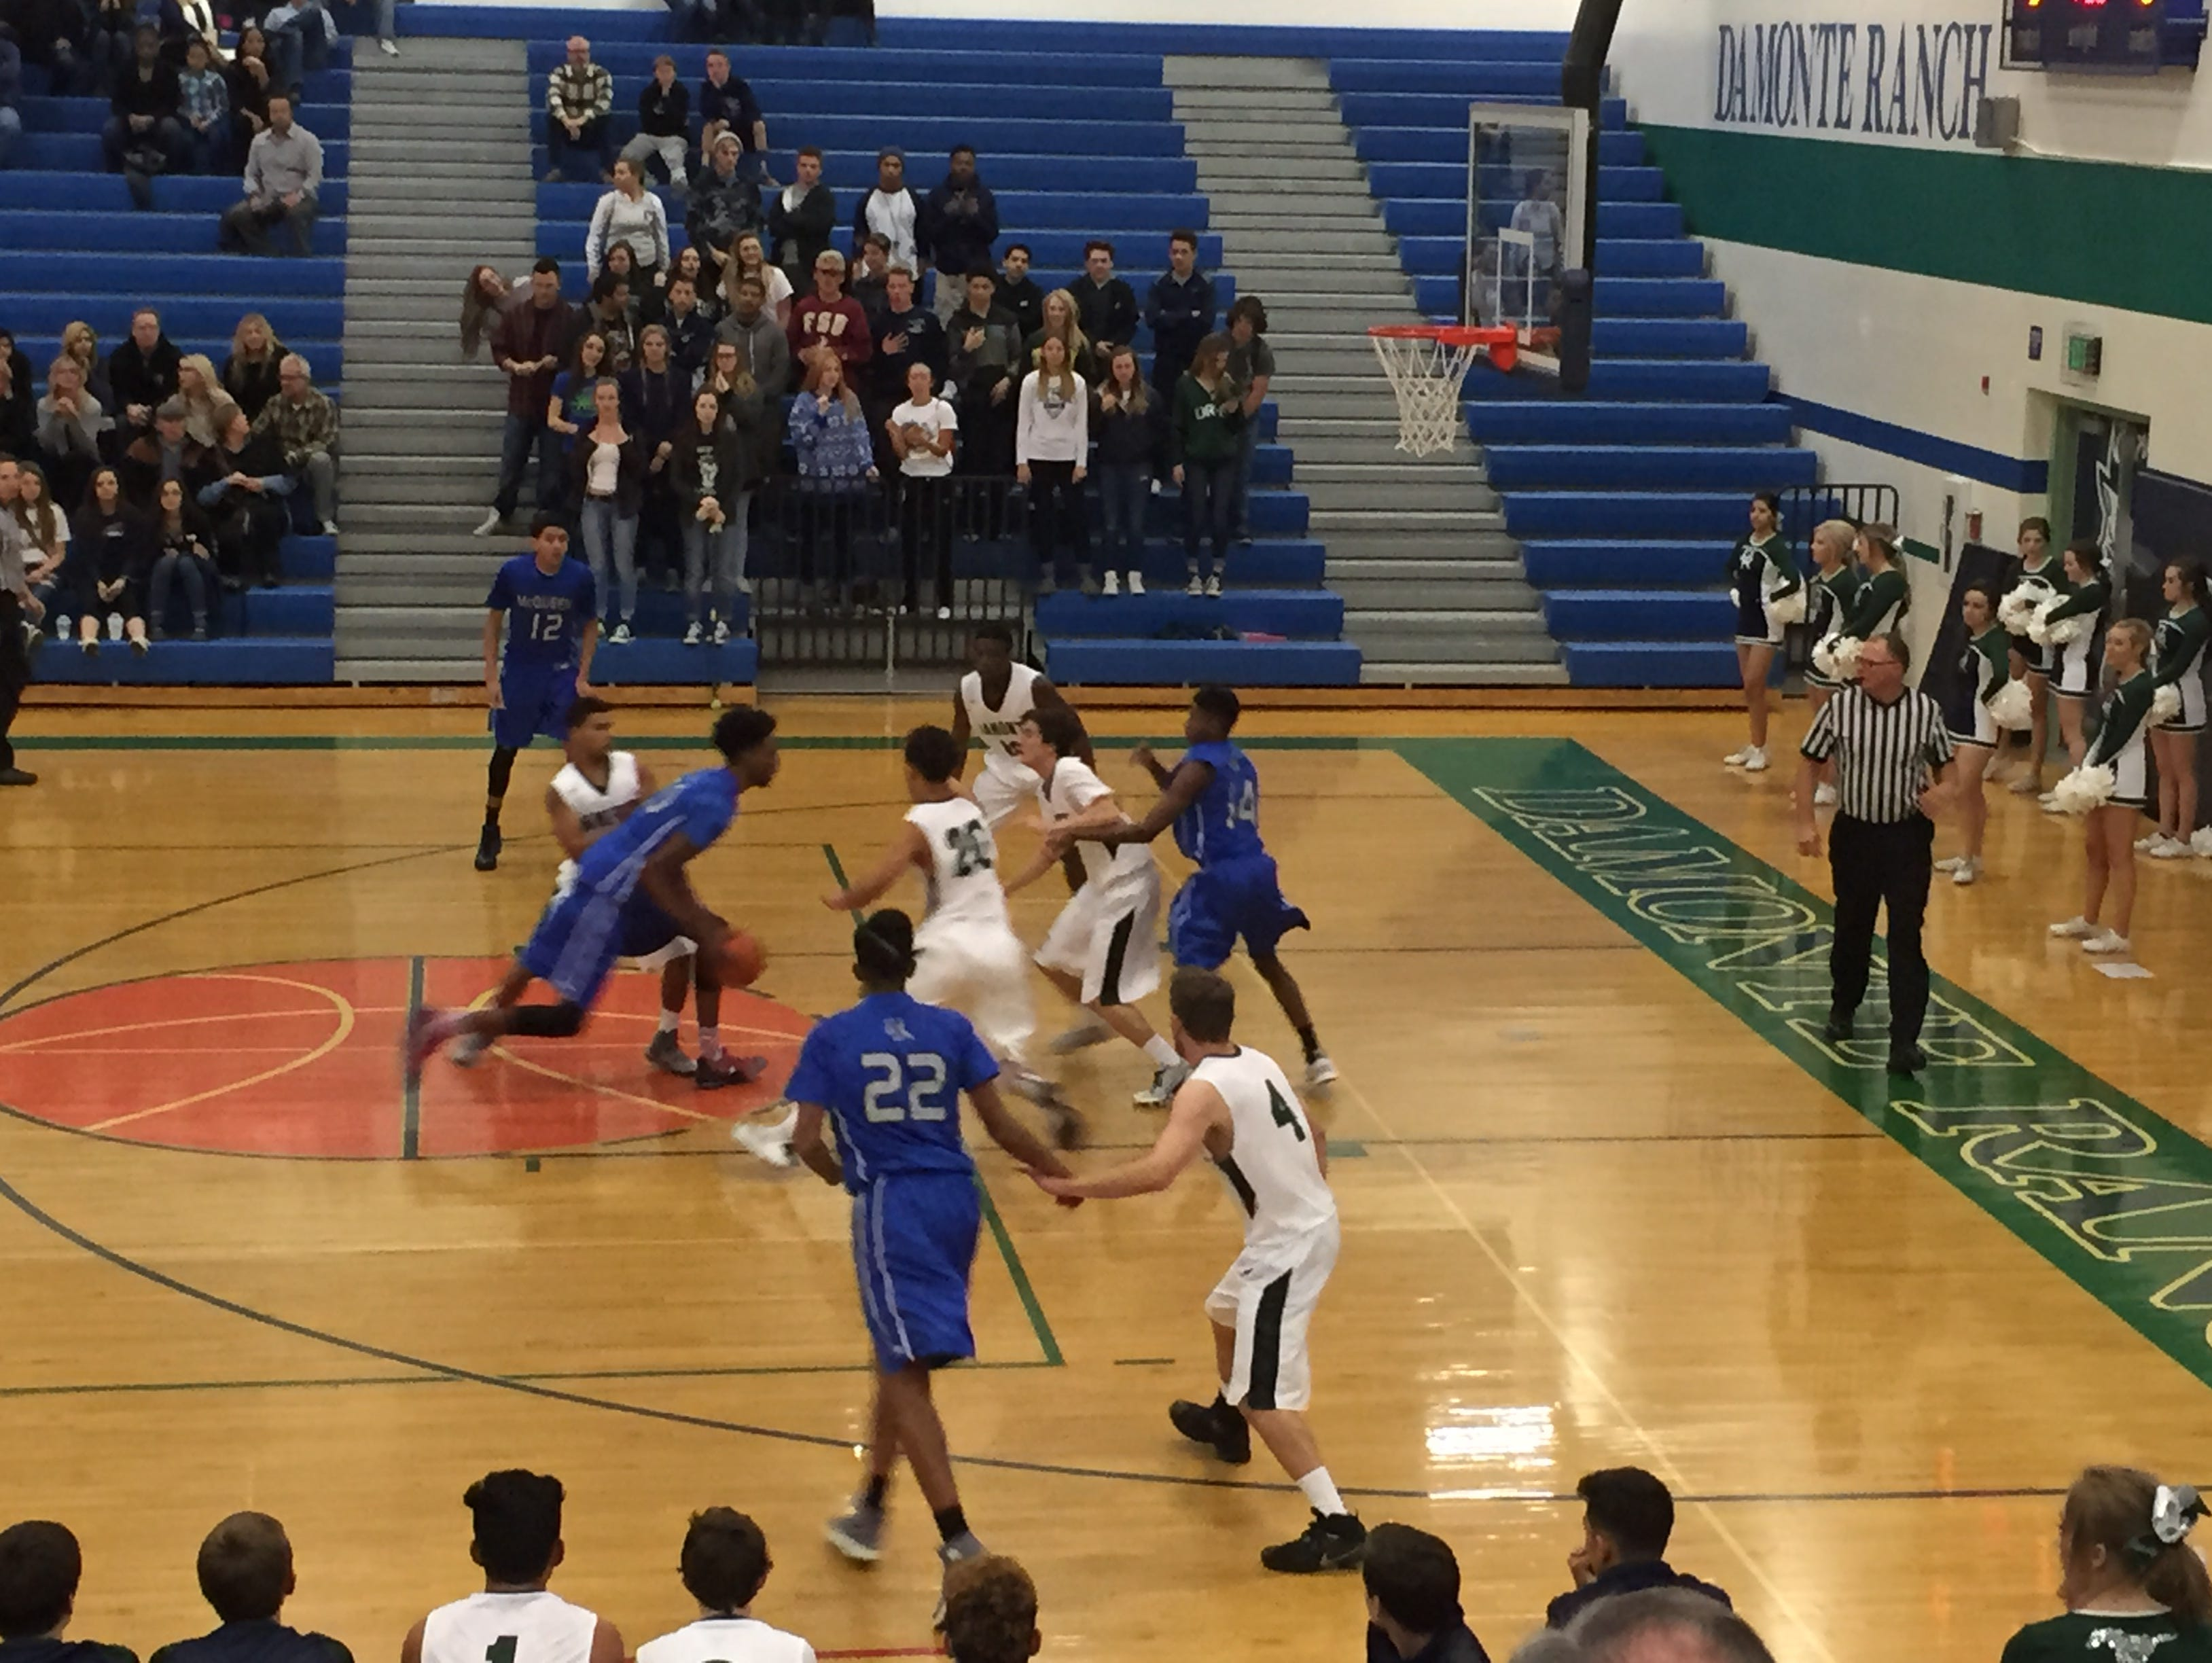 McQueen's Octavian Corley drives to the basket Tuesday at Damonte. McQueen won, 75-51